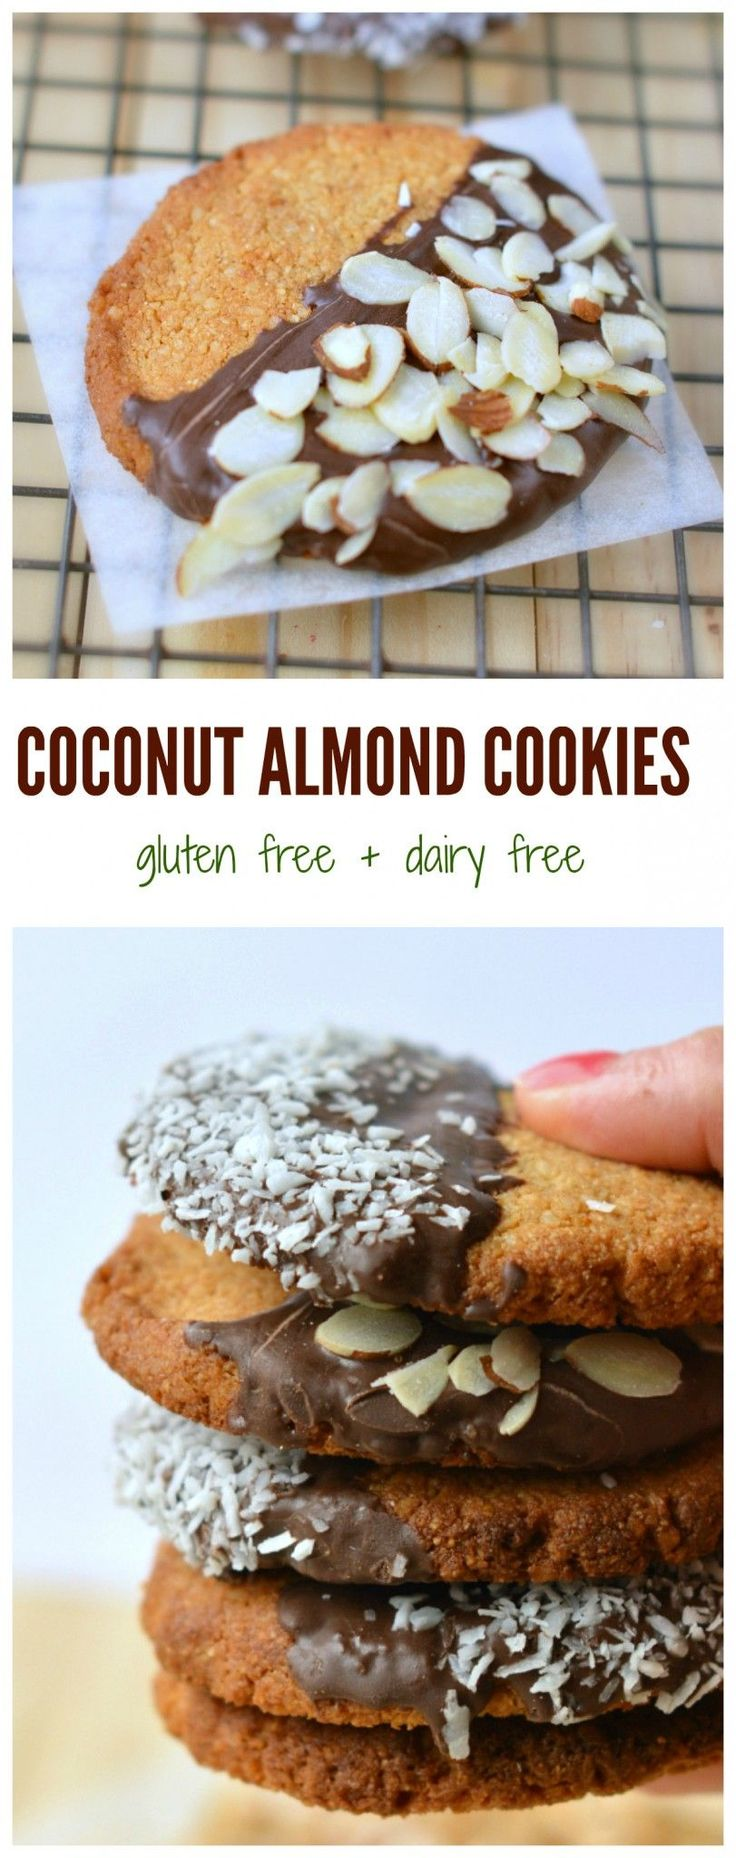 Easy + healthy + delicious cookie recipe in 15 minutes. Coconut Almond cookies, Gluten free, dairy free and refined sugar free.